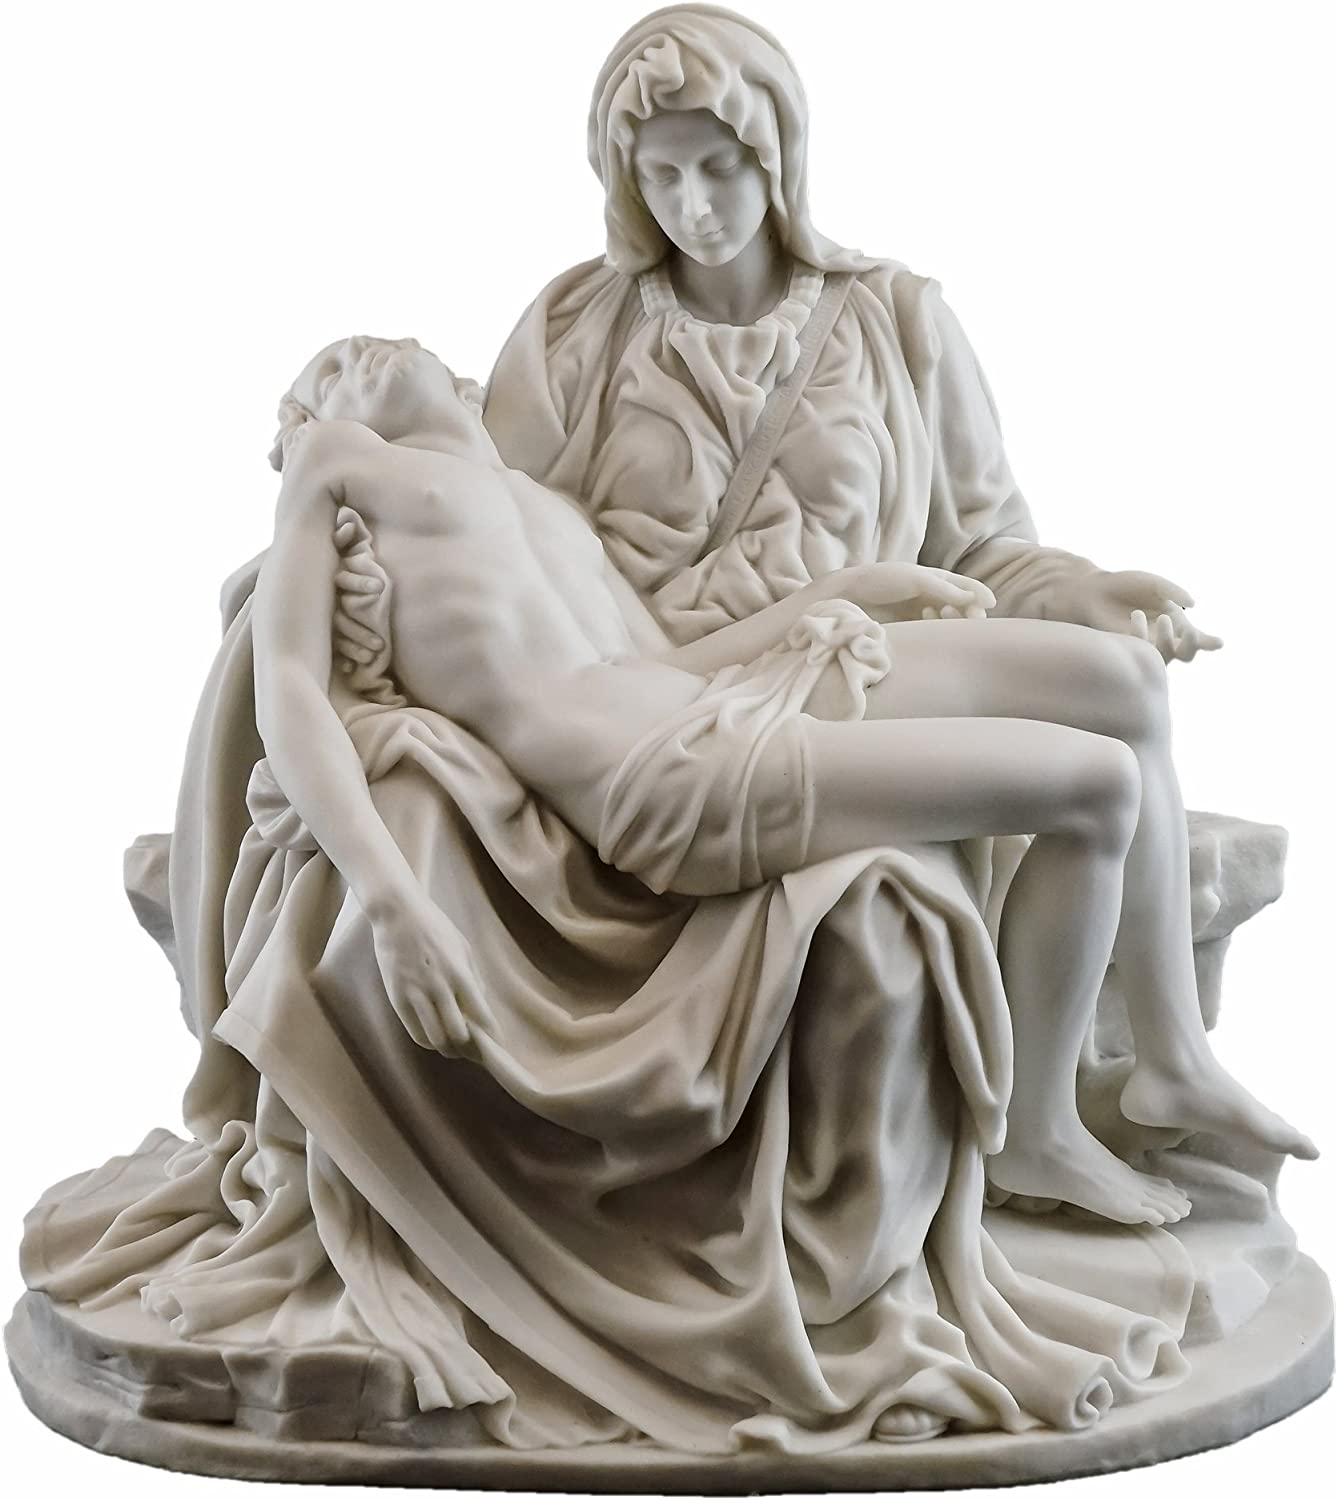 Top Collection La Pieta by Michelangelo Statue - Museum Grade Replica in Premium Sculpted Resin - 10-Inch Tall Figurine with White Marble Finish